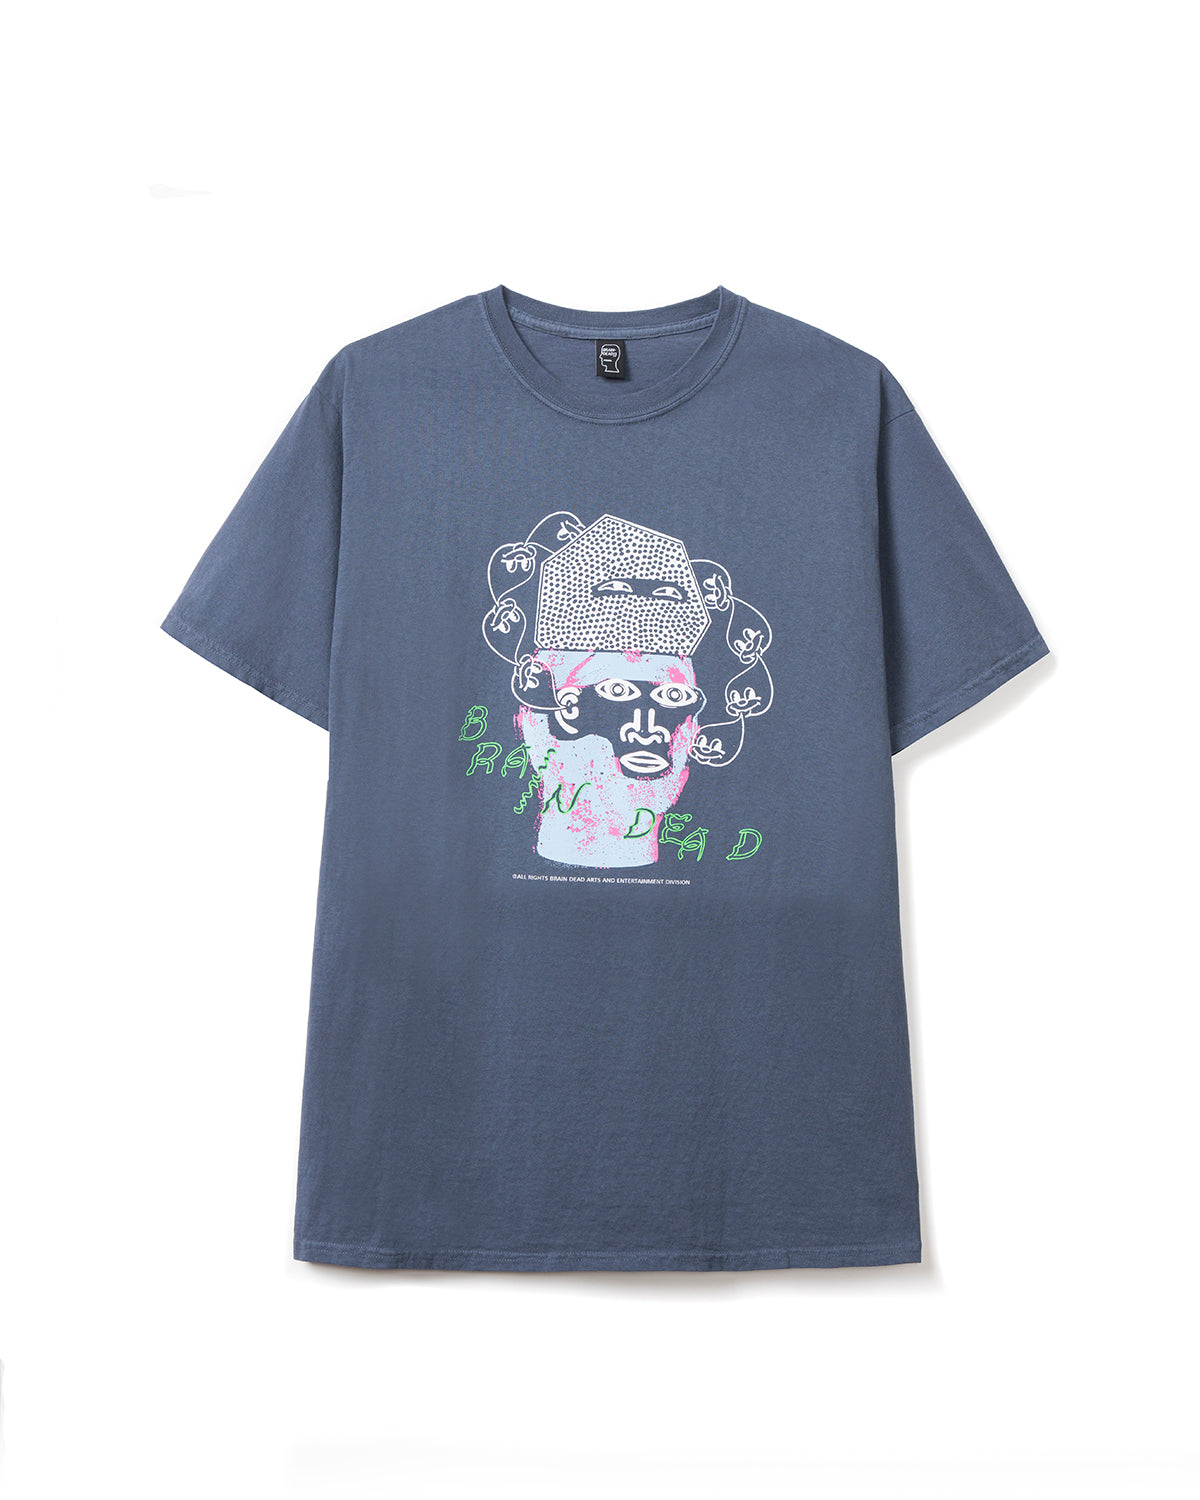 Cure T-shirt - Navy - Brain Dead